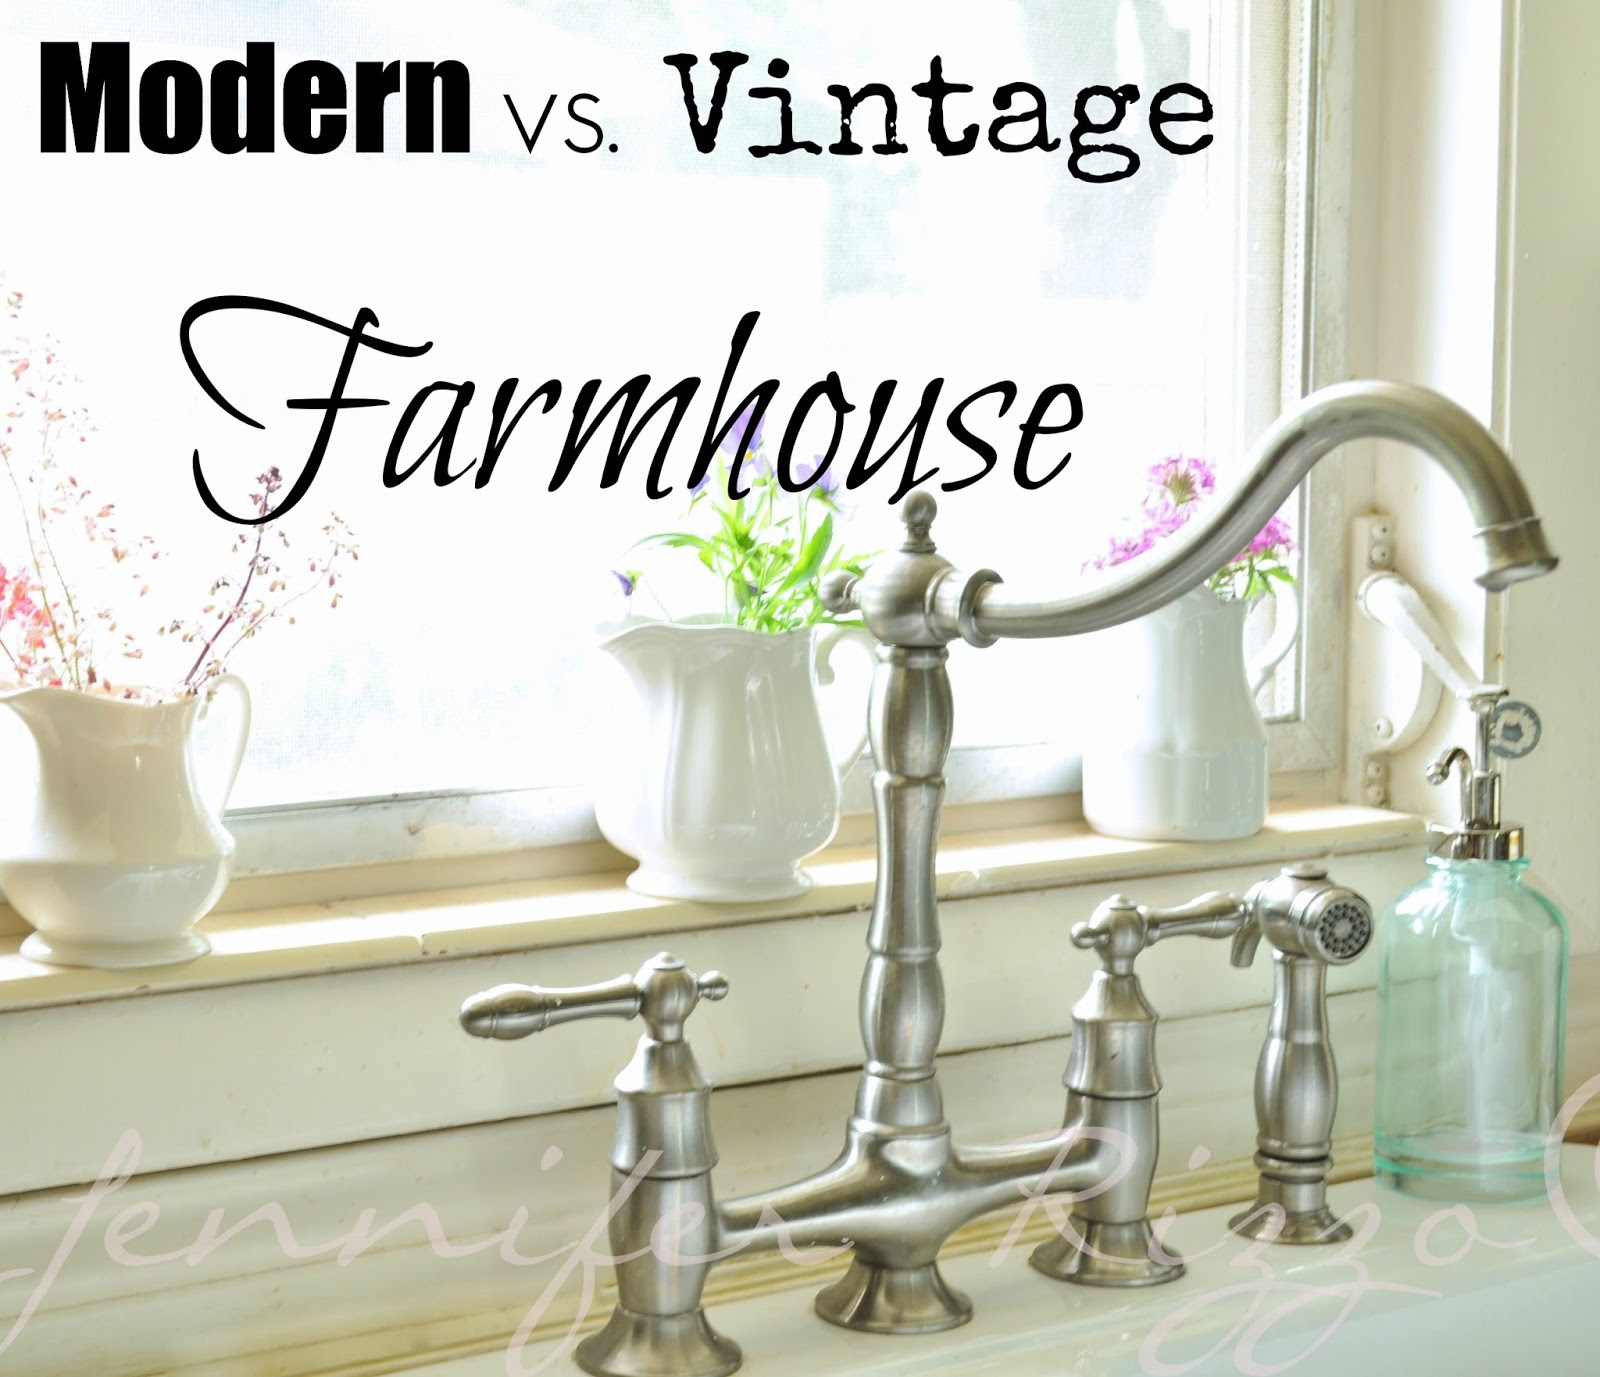 The difference between modern vs vintage farmhouse jennifer rizzo - What is farmhouse style ...